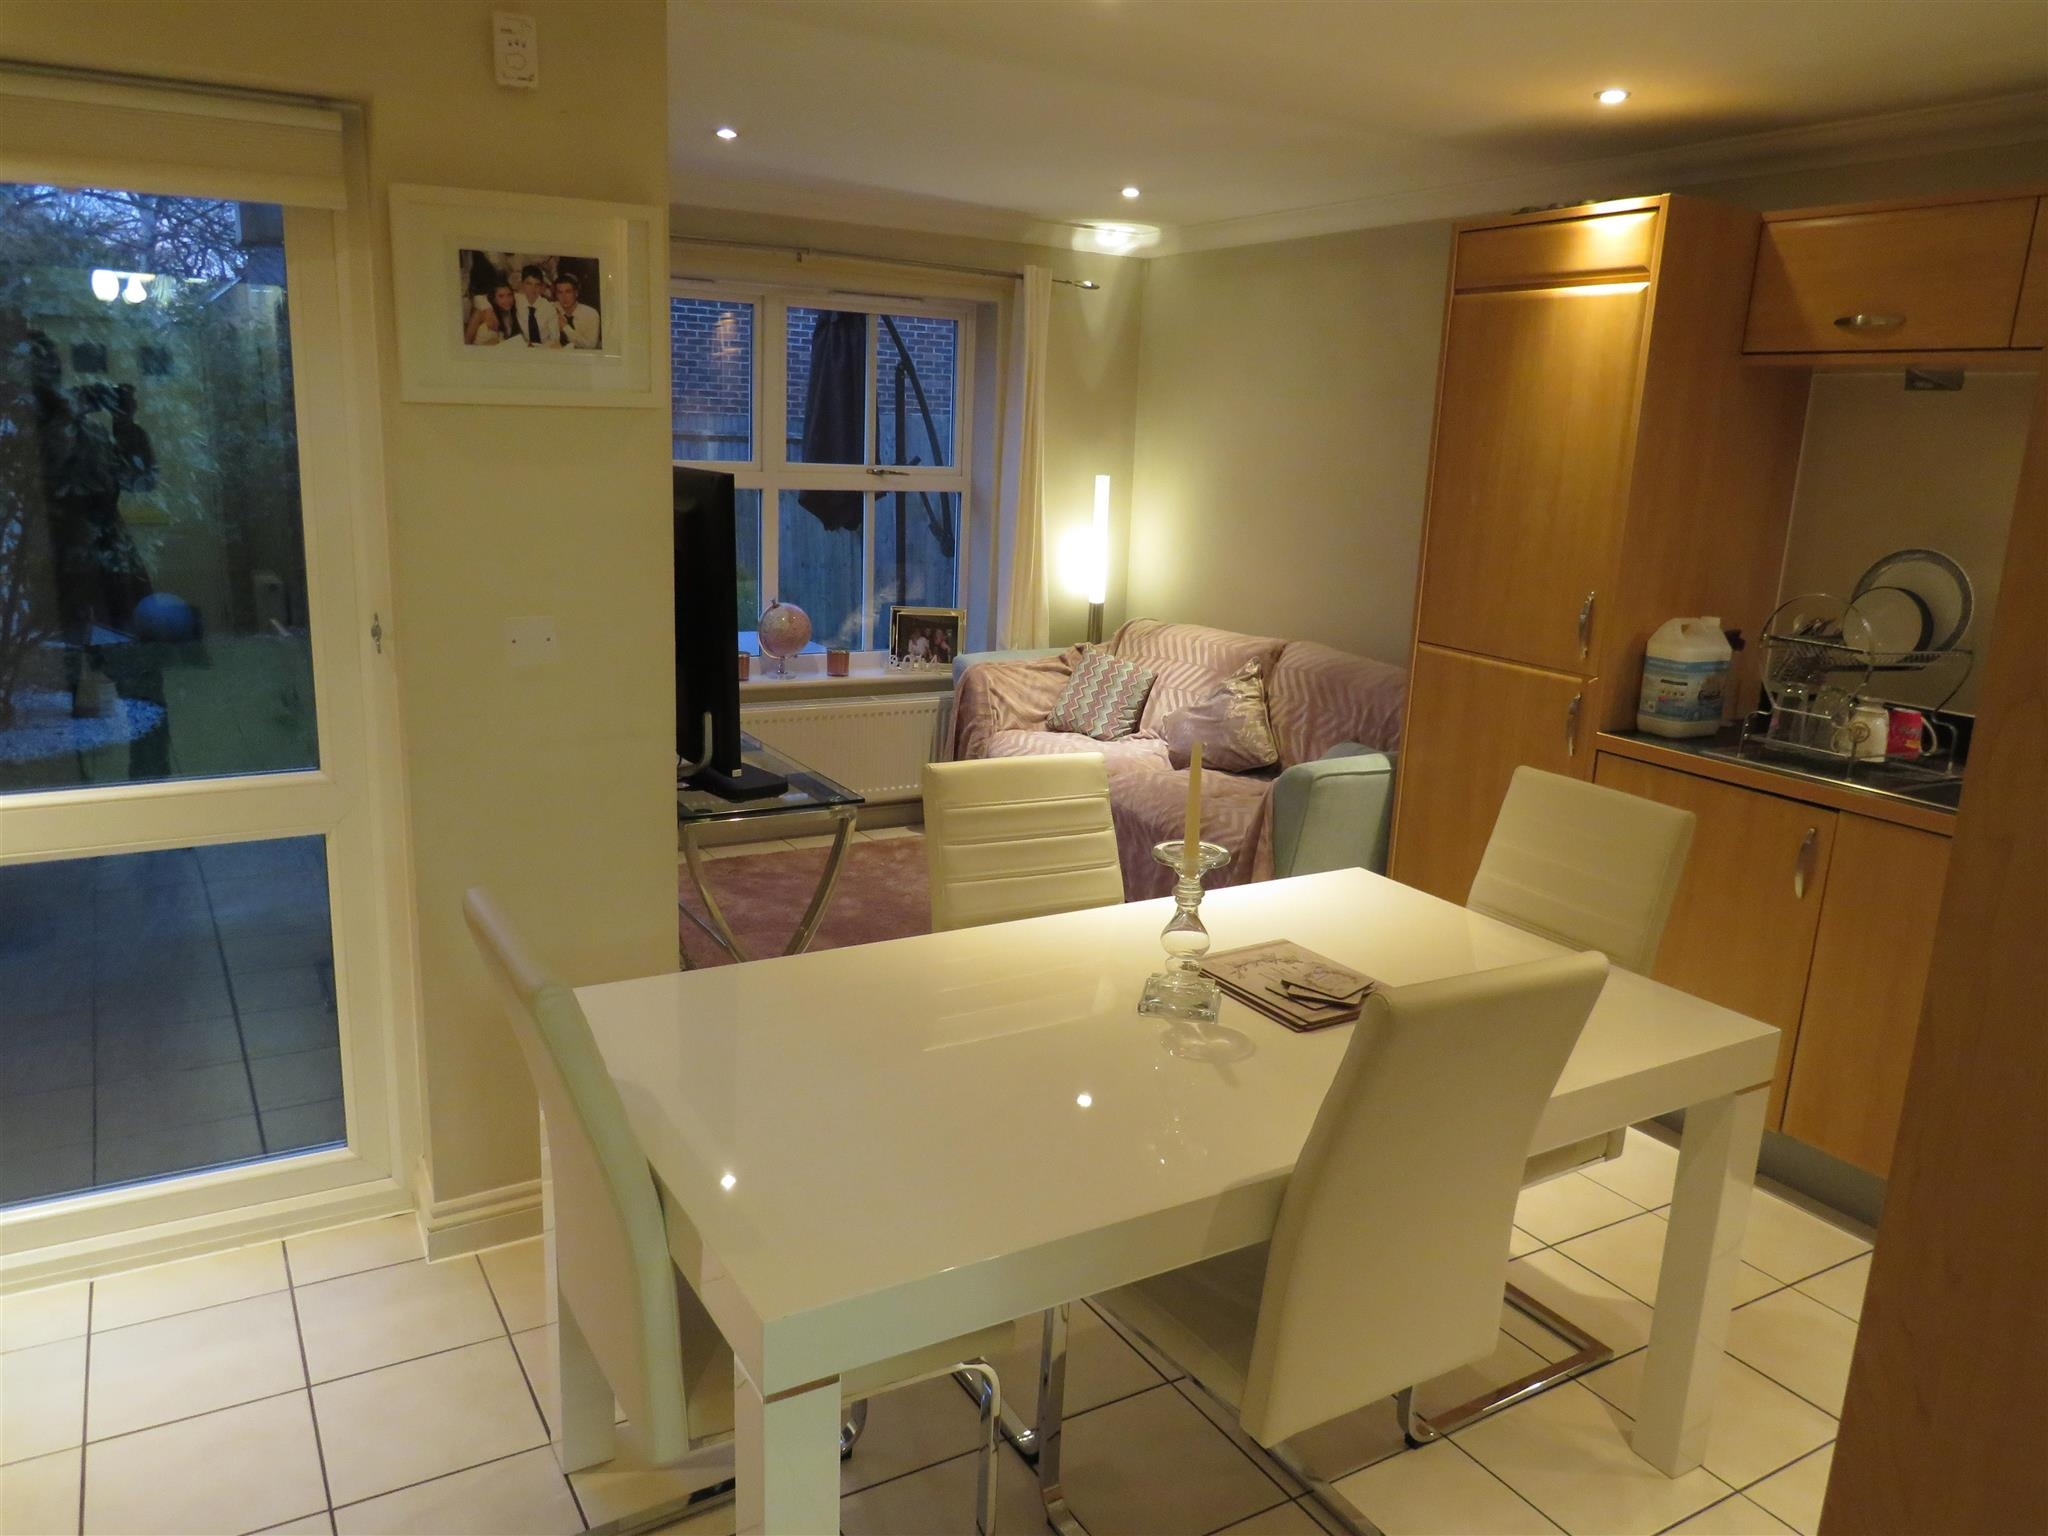 Ensuite Room To Rent In Epsom